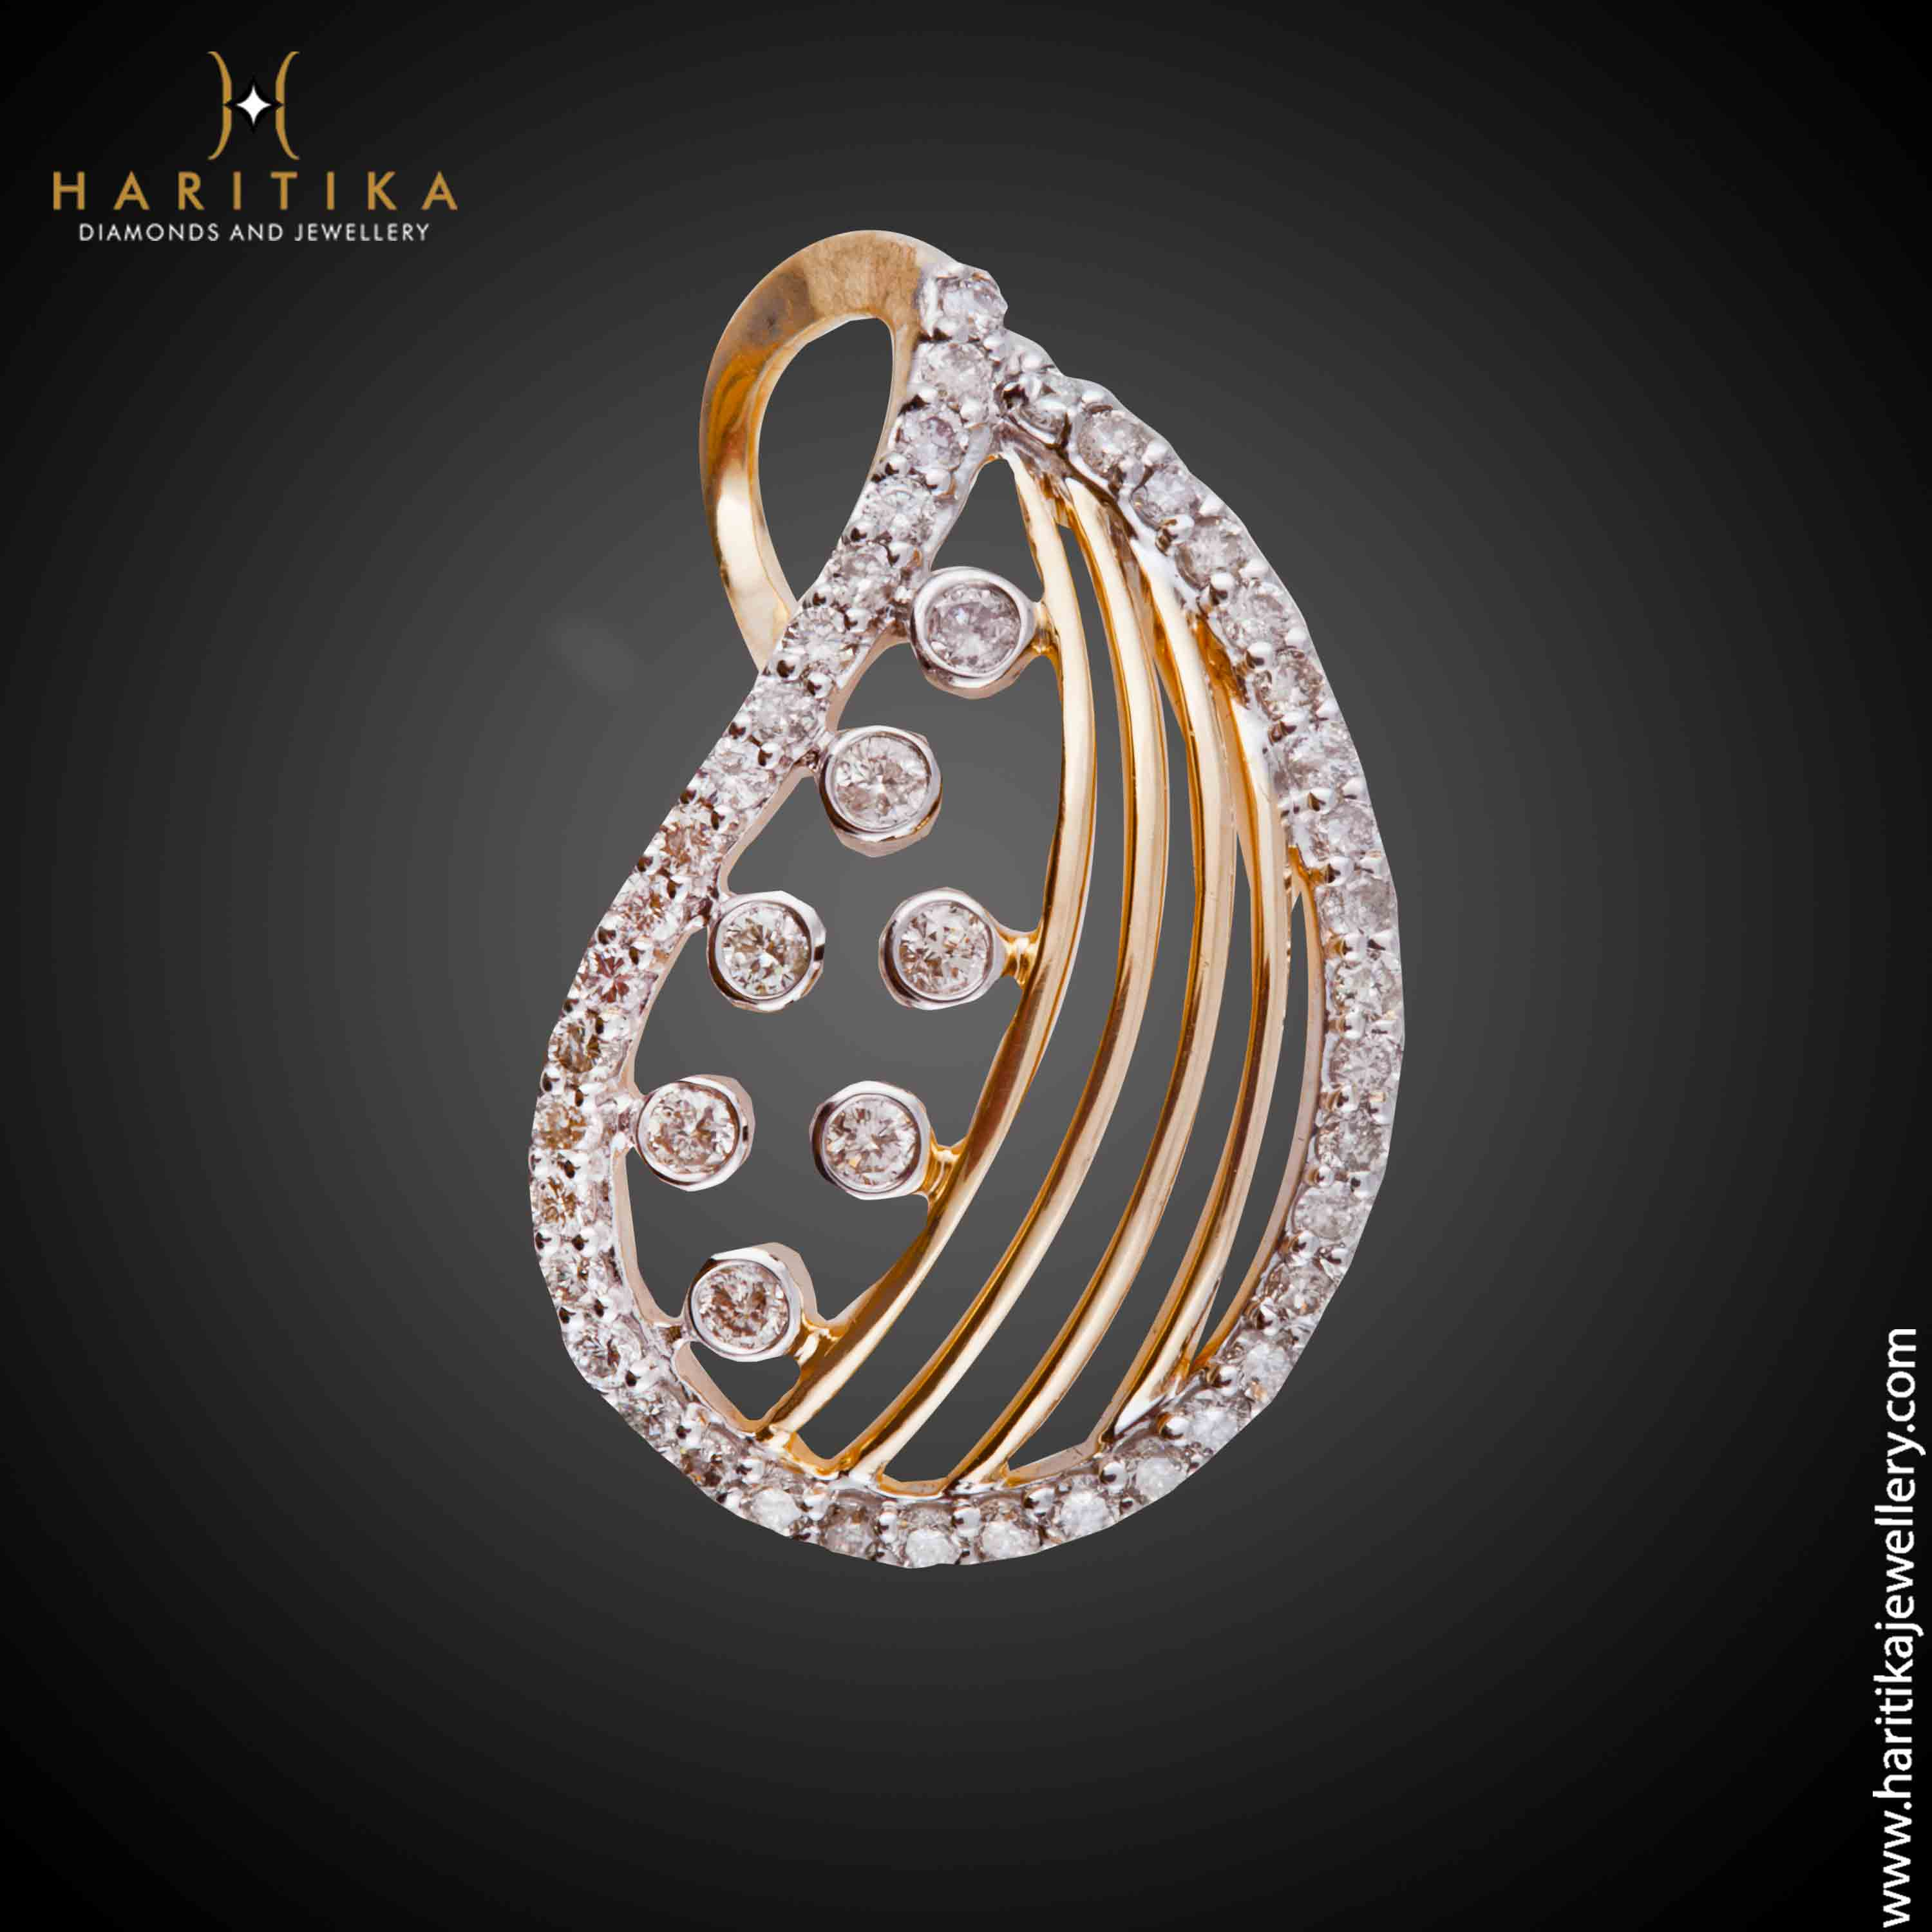 Certified Diamond Jewellery For Men And Women Best Prices